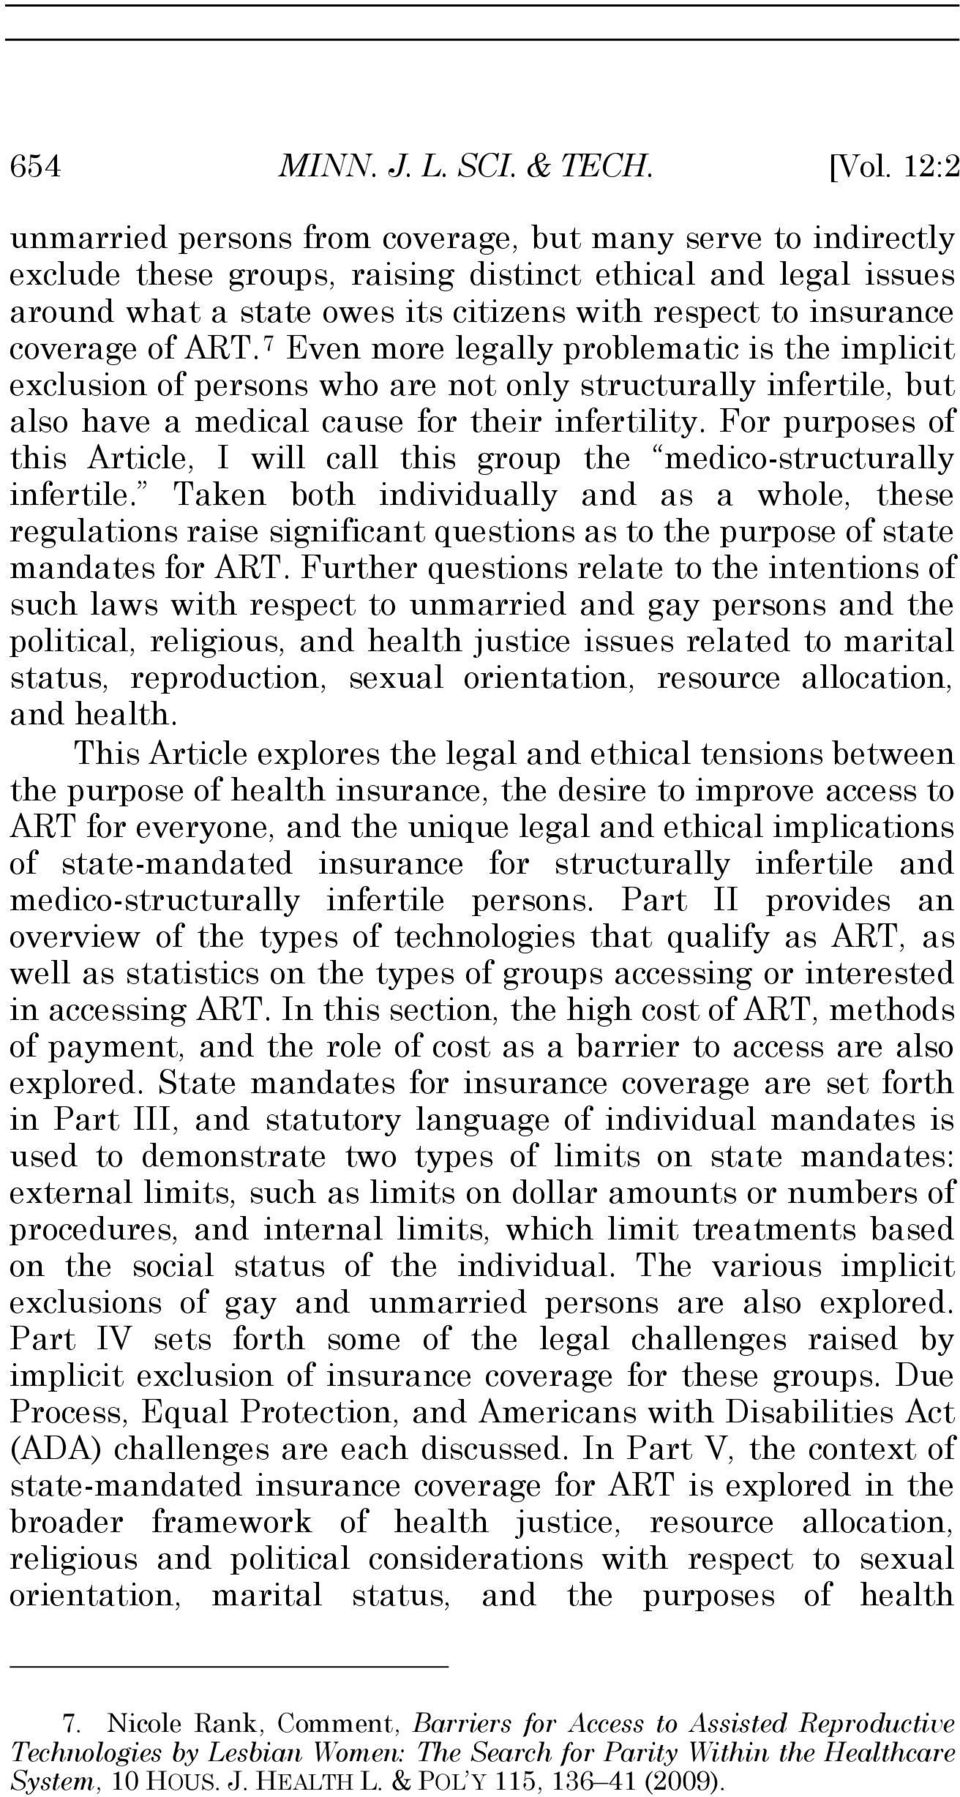 coverage of ART. 7 Even more legally problematic is the implicit exclusion of persons who are not only structurally infertile, but also have a medical cause for their infertility.